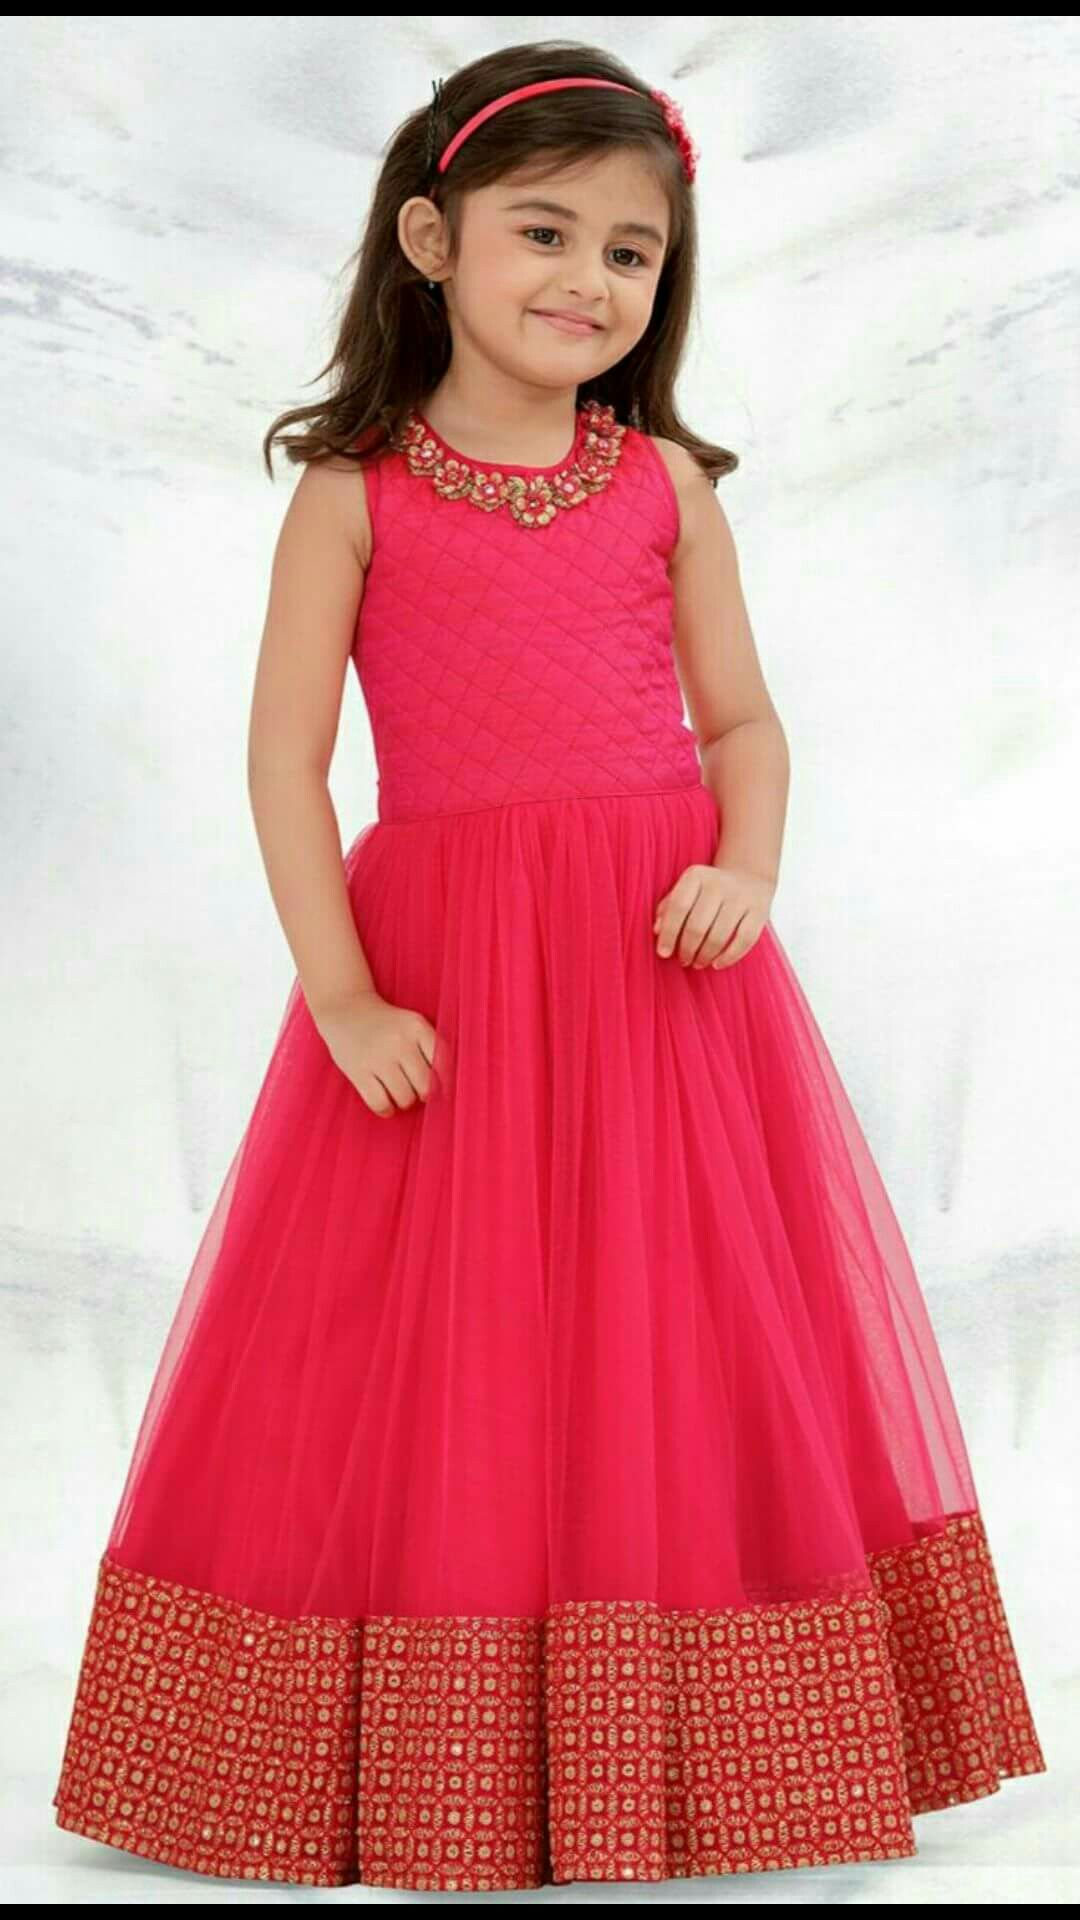 Long Frocks For Kids, Kids Frocks, Kids Indian Wear, Kids Ethnic Wear, Kids Gown, Baby Girl Dresses, Baby Outfits, Kids Store, Long Gowns, Clothes For Girls, Kids, Baby Coming Home Outfit, Long Dresses, Baby Girl Clothing, Little Girl Dresses.